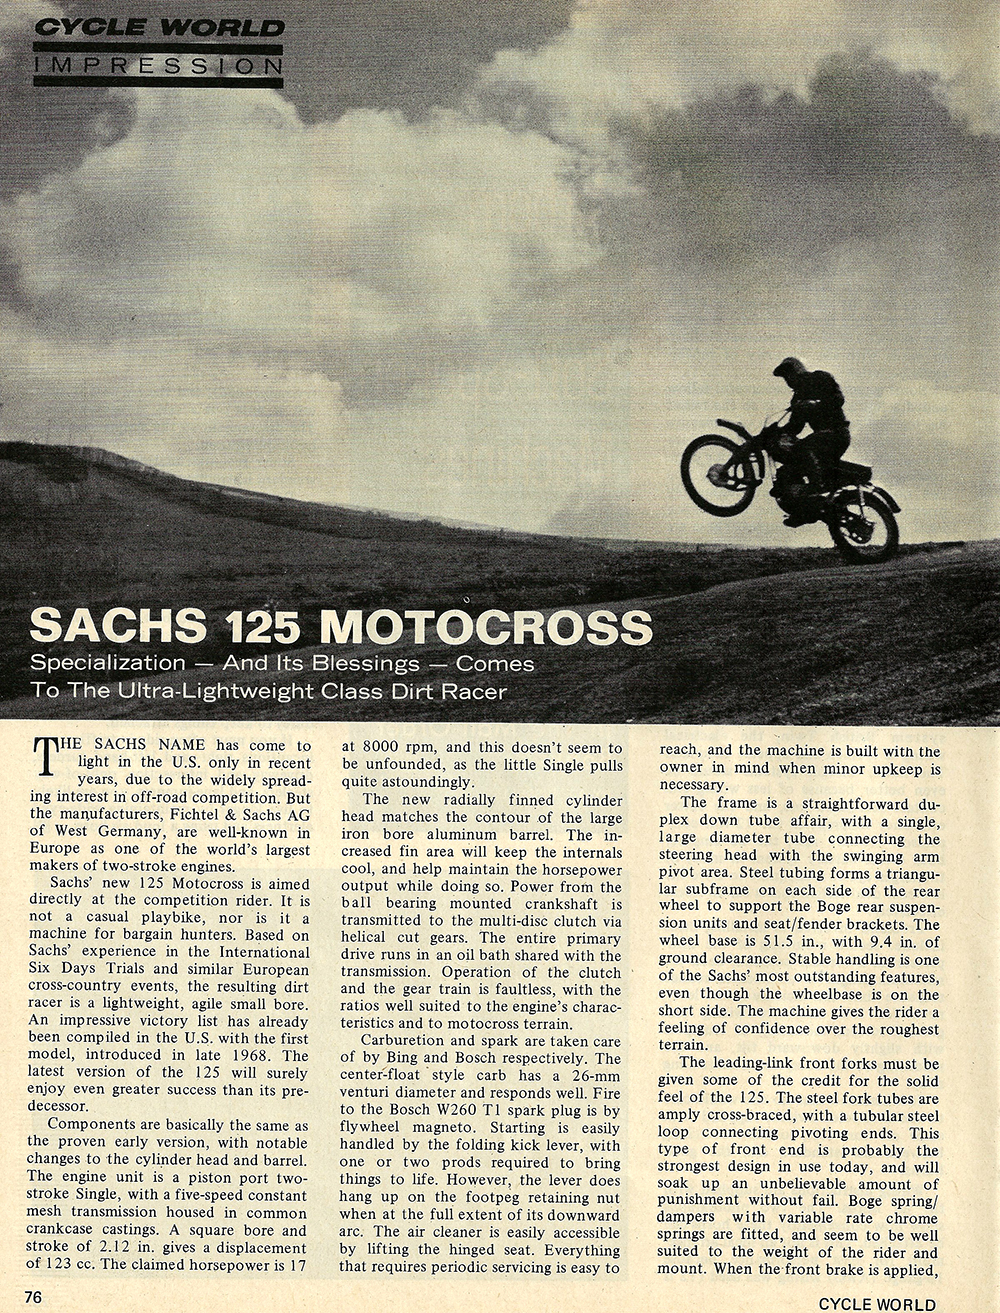 1970 Sachs 125 Motocross road test 01.jpg